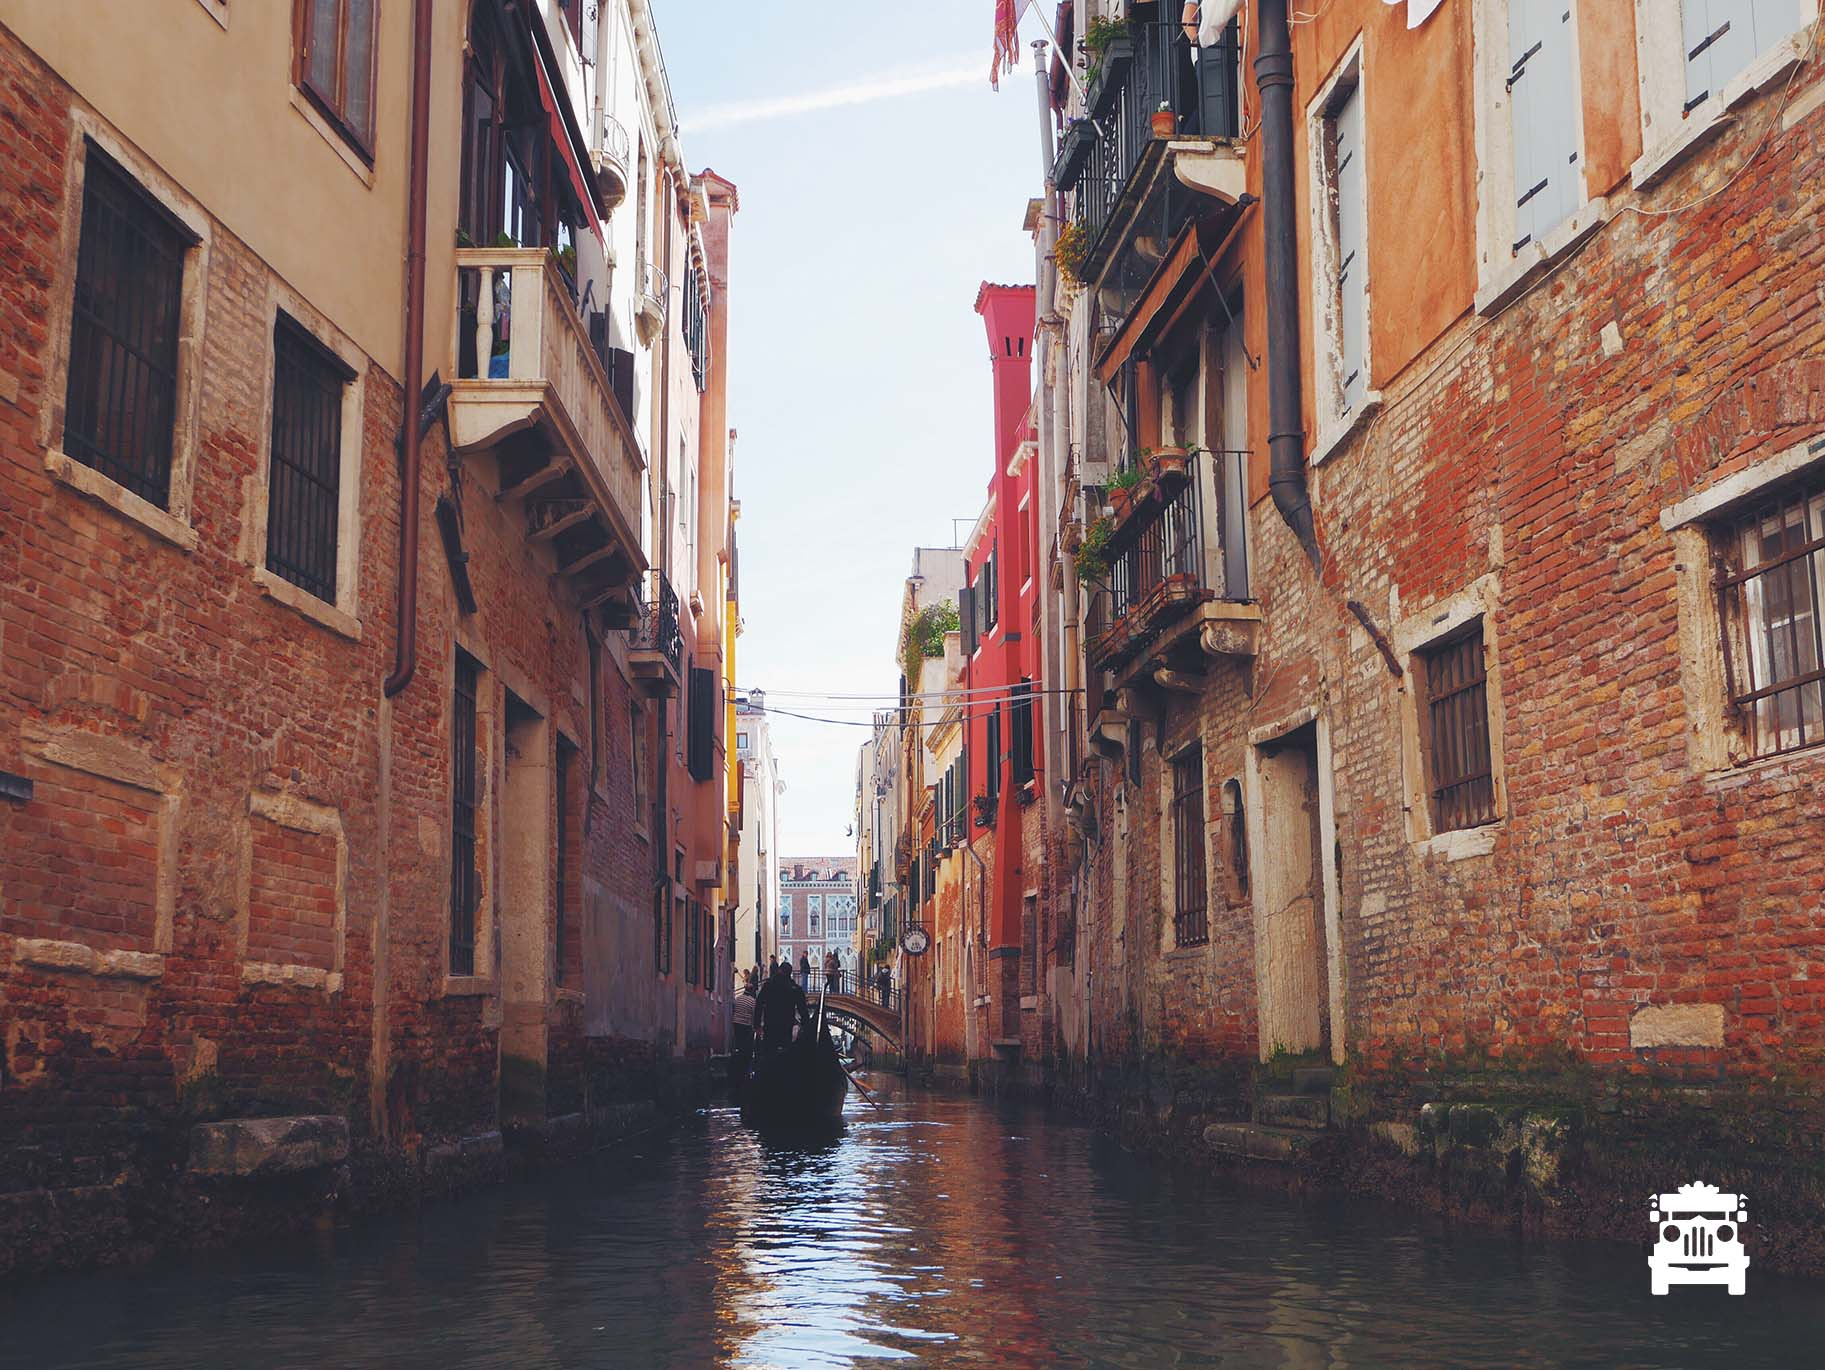 Went through the smaller canals within the city